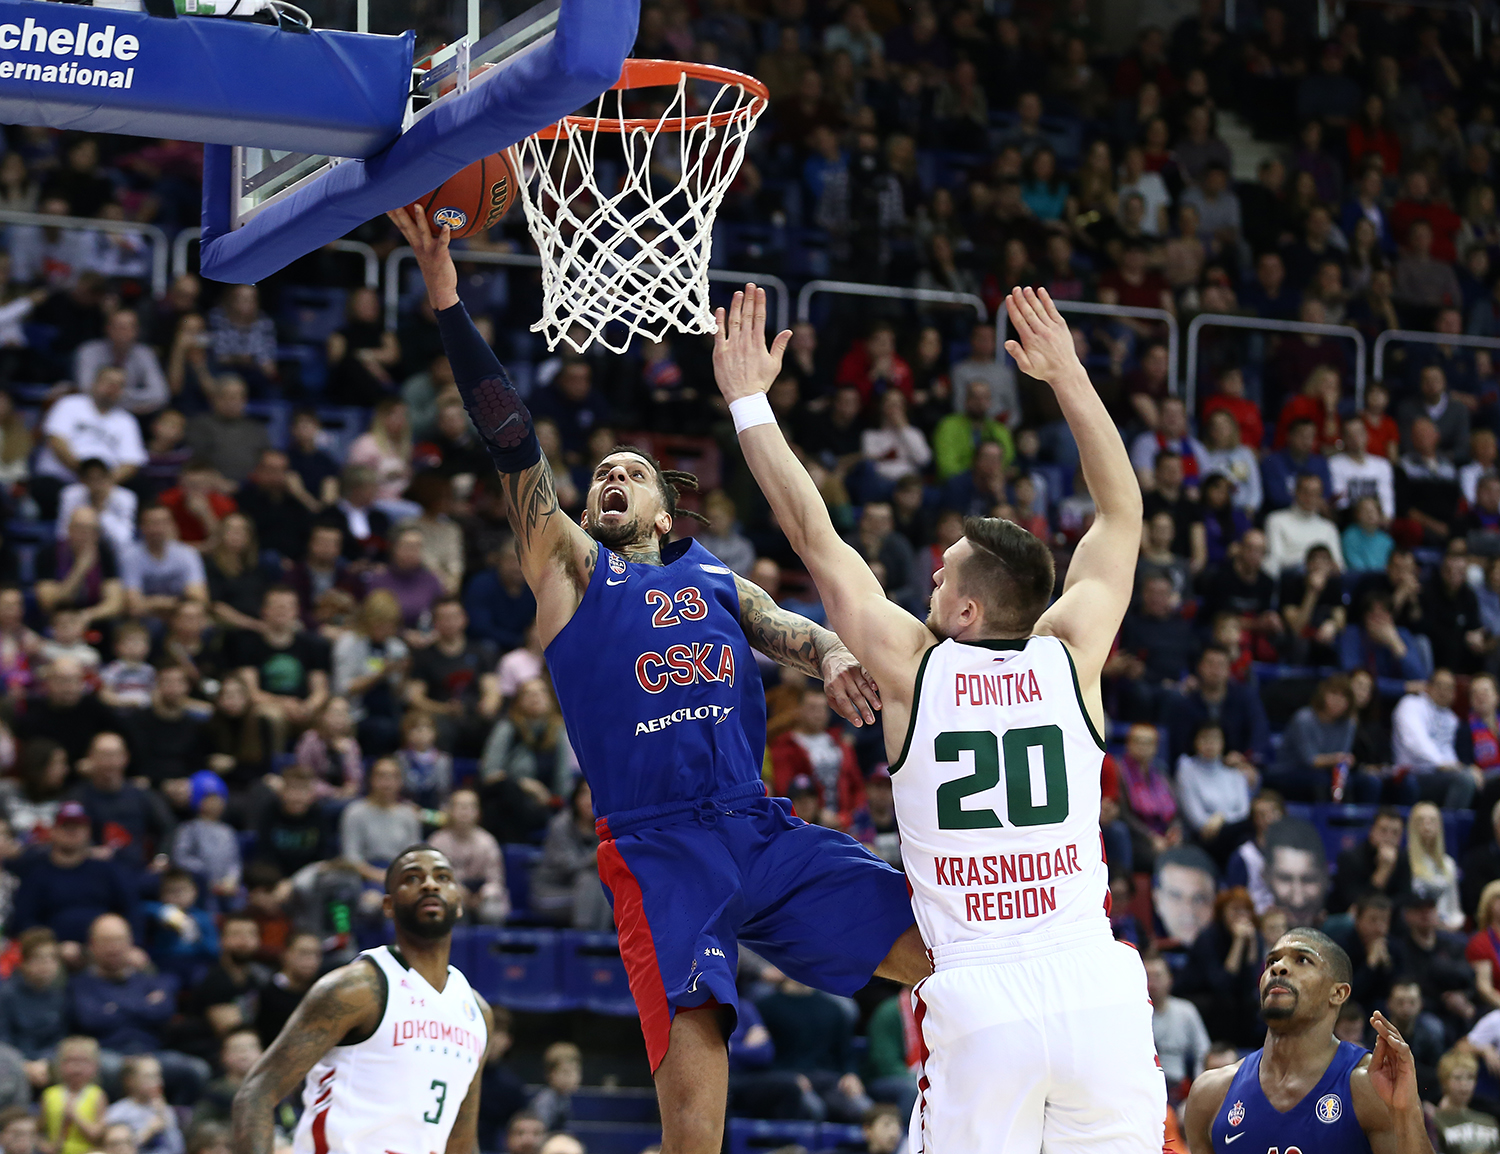 CSKA Stifles Loko, Hackett Stars In Crunch Time